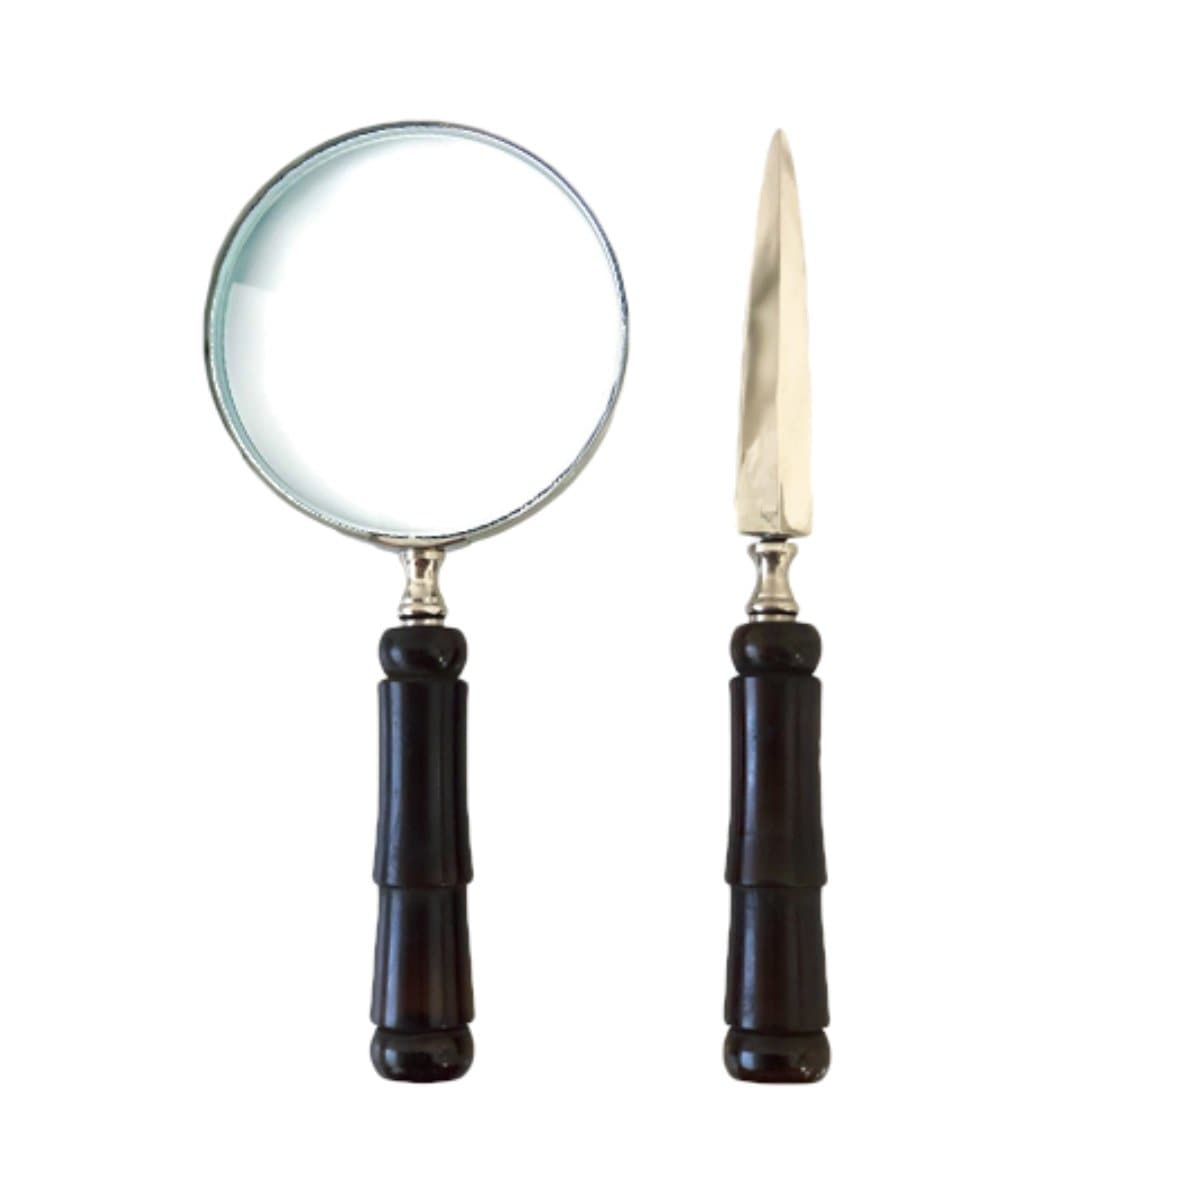 Letter Opener & Magnifier Set with Resin Handle, Dark Brown